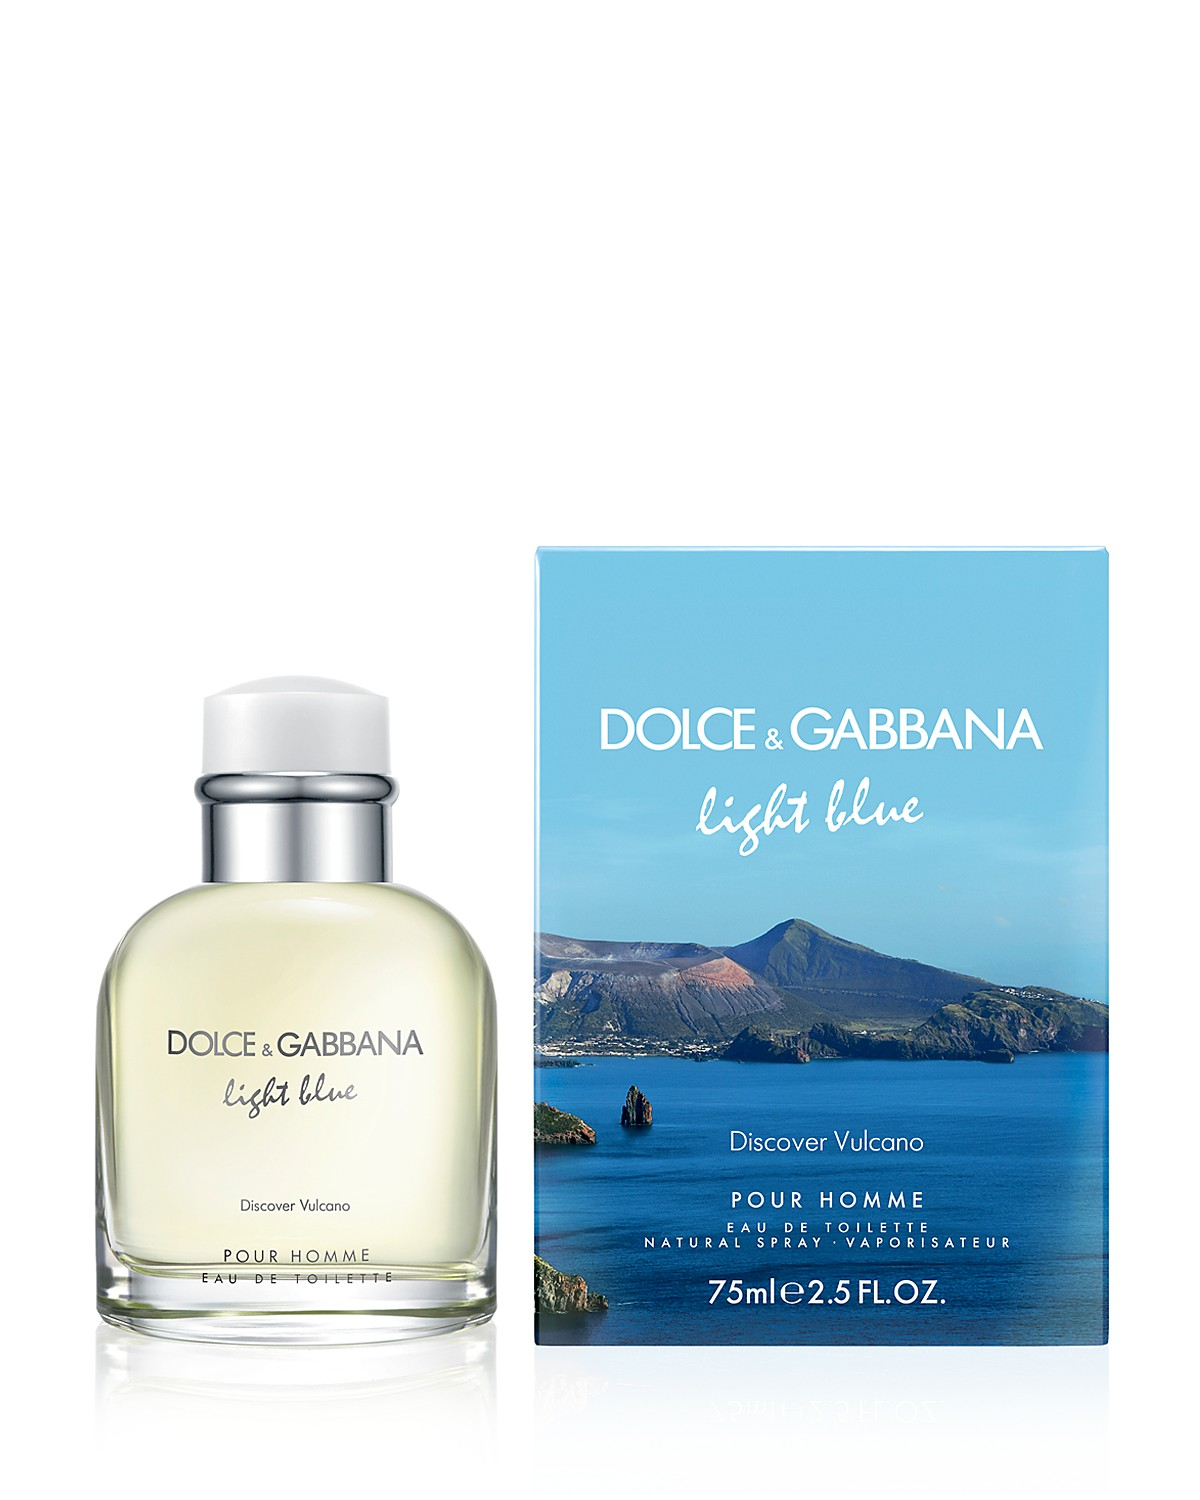 DOLCE & GABBANA LIGHT BLUE DISCOVER VULCANO EDT 125 ML VP.